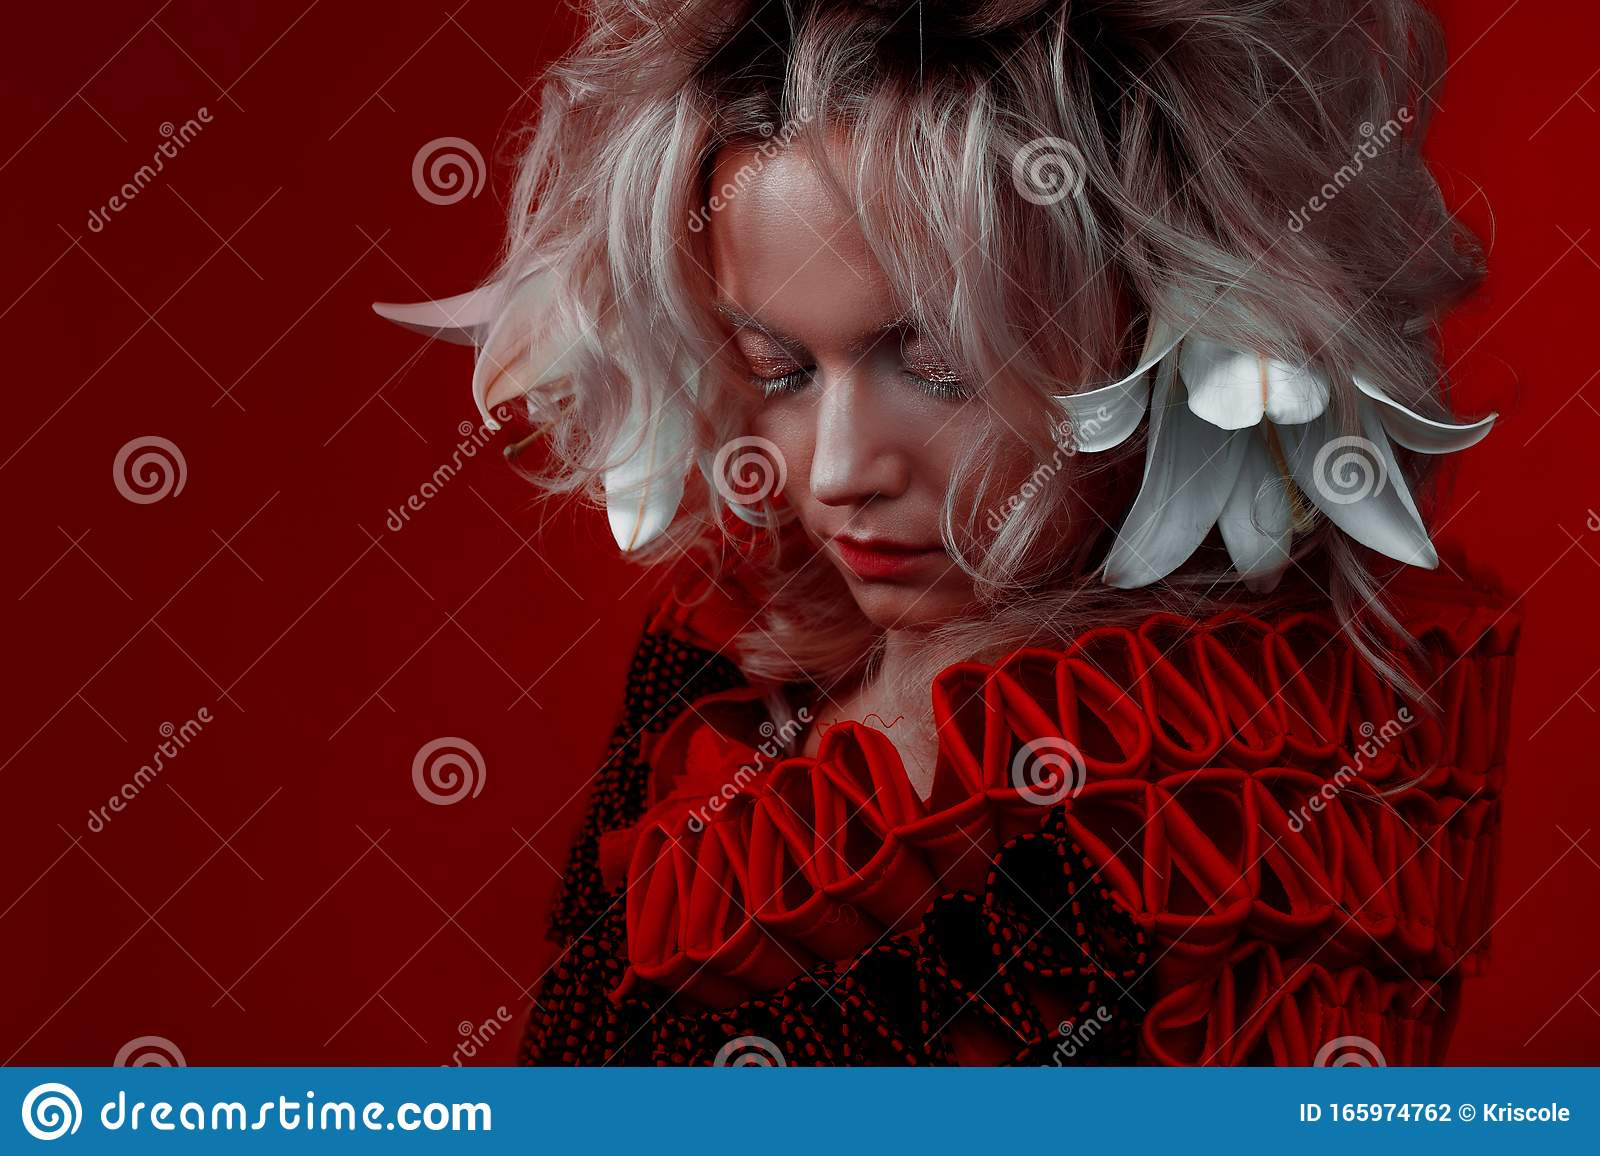 Shades Of Red Strange Attractive Woman In A Red Outfit On A Red Background With Lily Flowers In Her Hair Stock Photo Image Of Portrait Fantasy 165974762